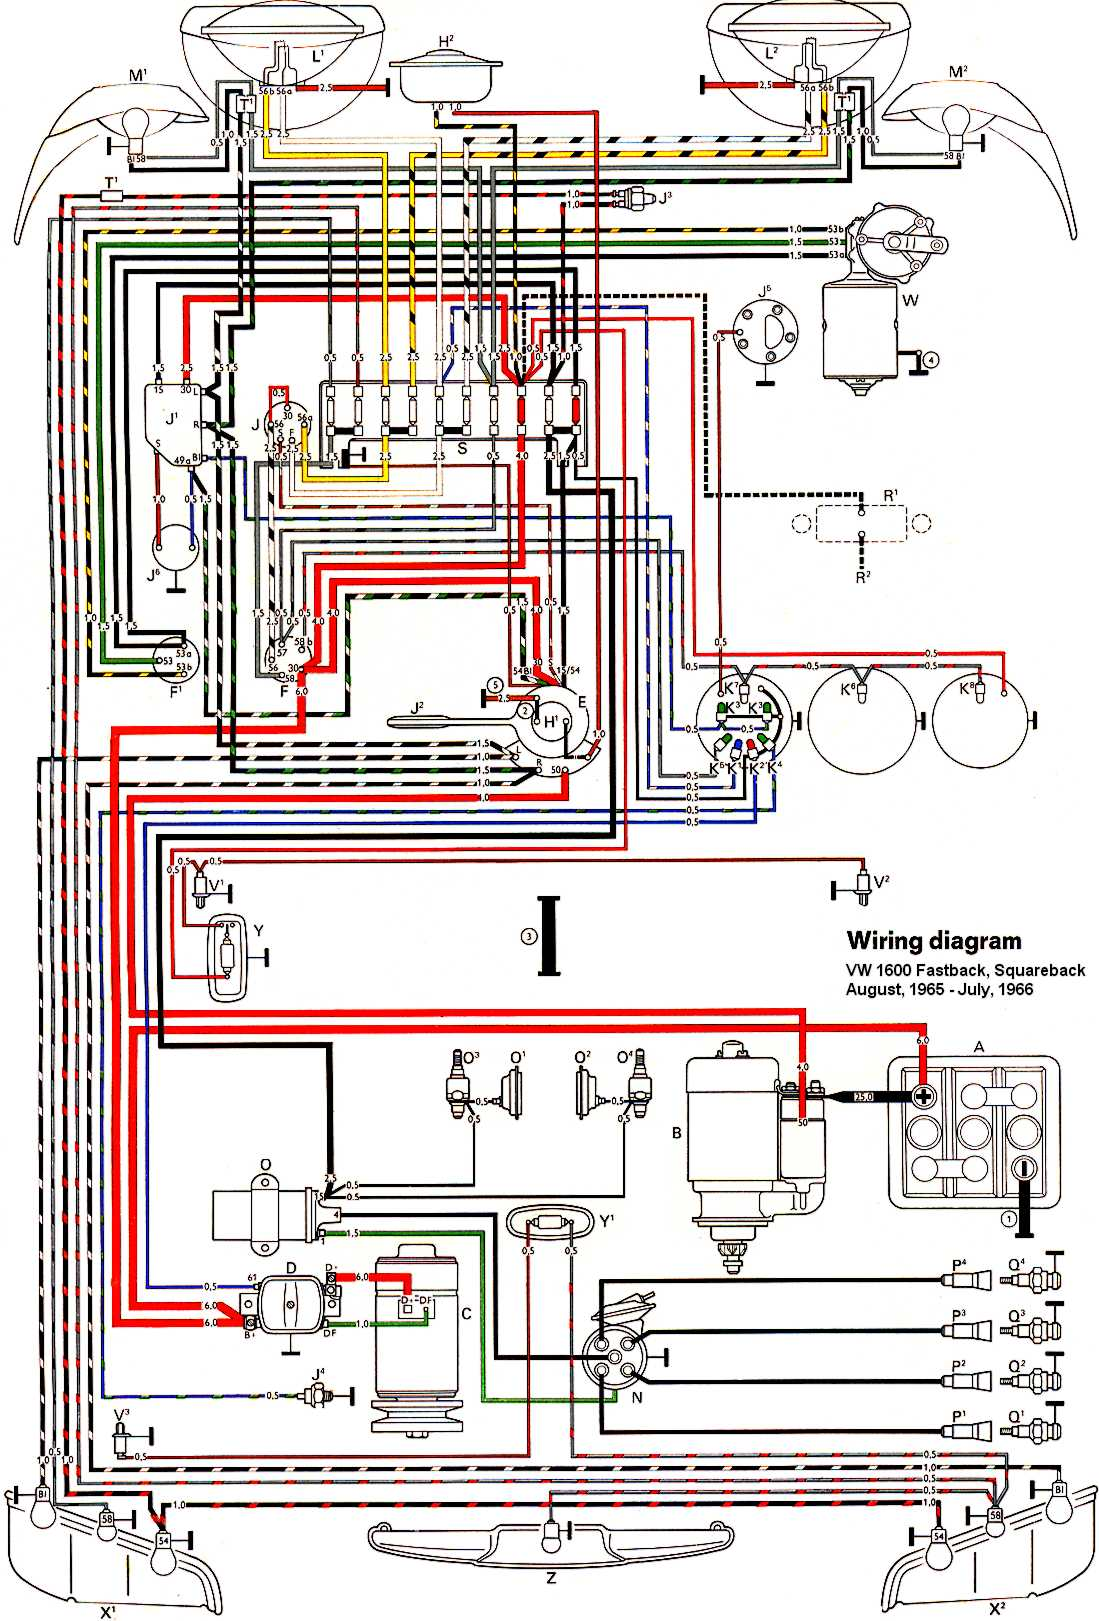 2006 volkswagen jetta stereo wiring diagram polaris atv 2010 car